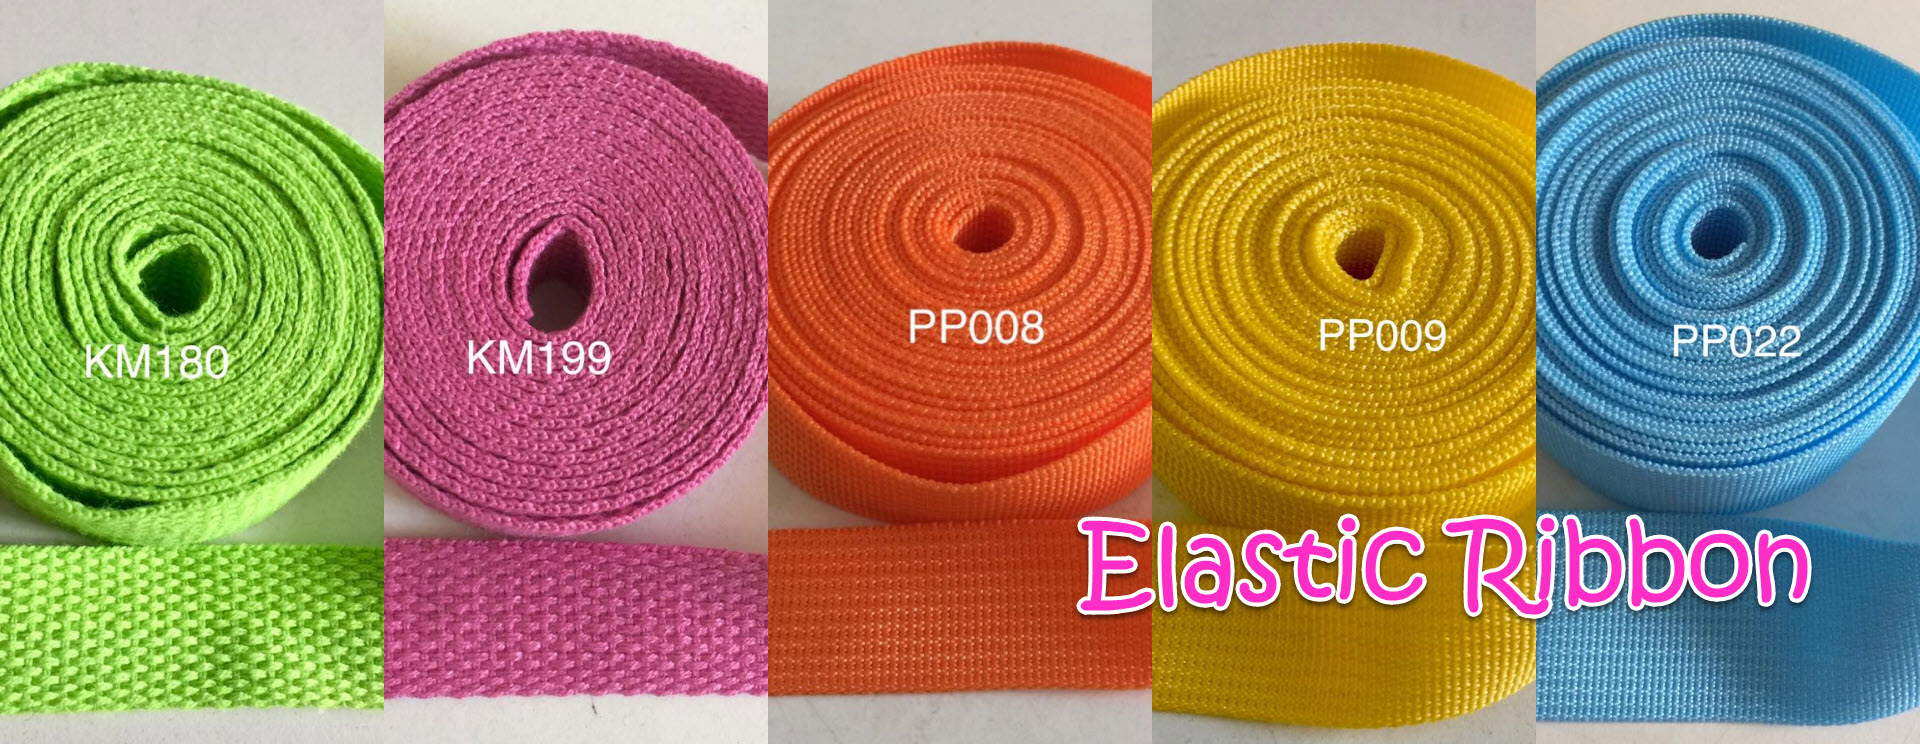 Category: Elastic Ribbon